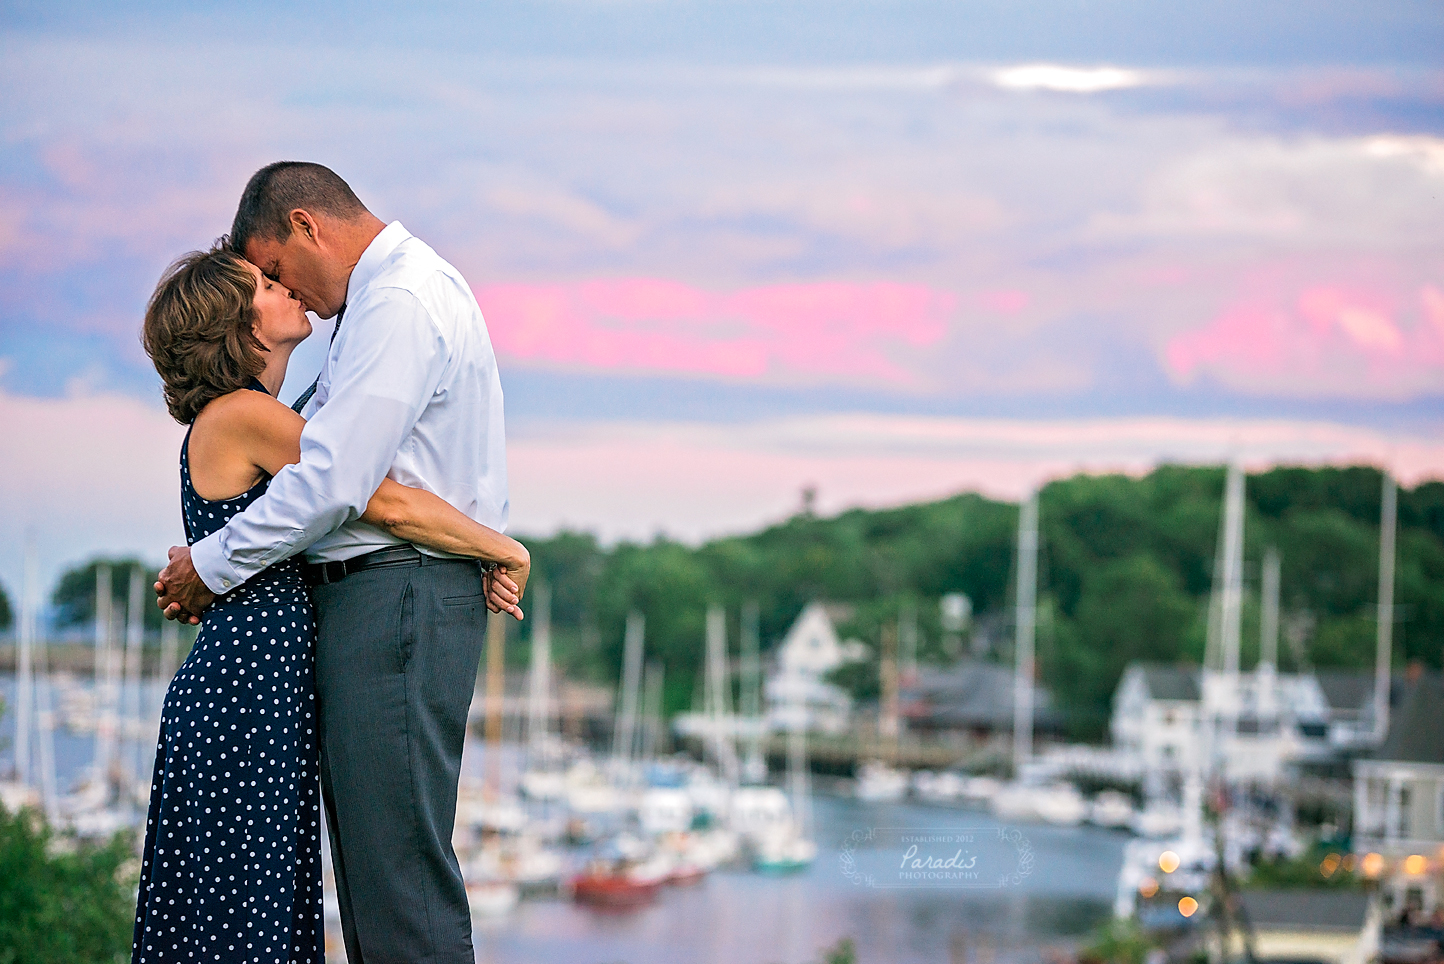 paradis photography maine wedding photographer camden maine sunset anniversary